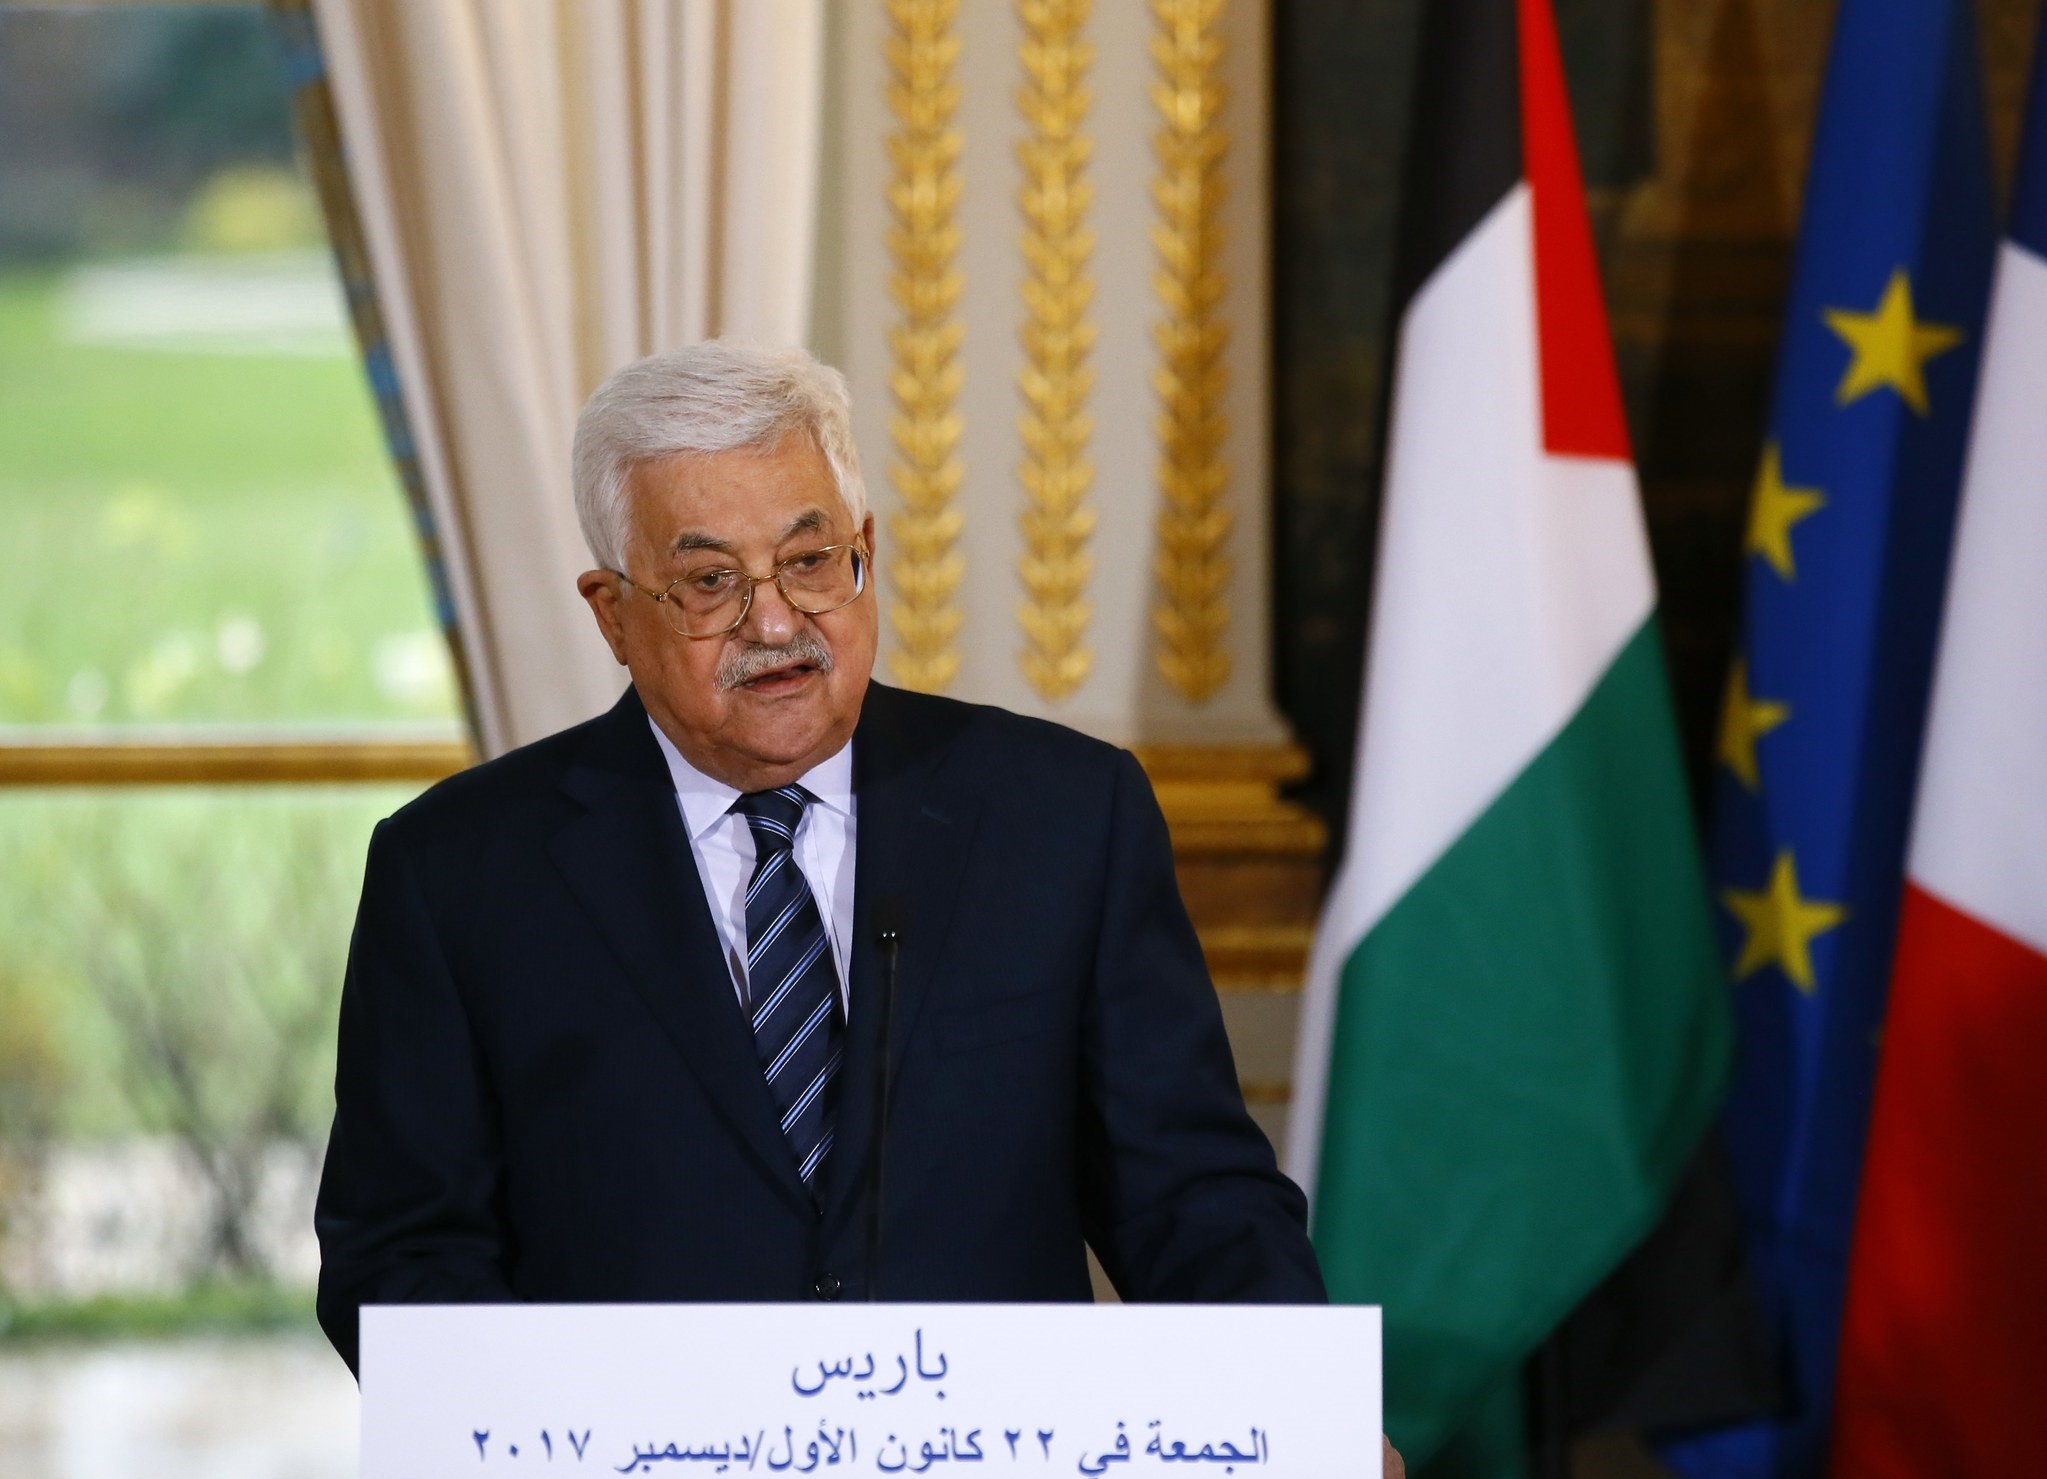 Palestinian President Mahmoud Abbas attends a press statement with French President (unseen) after a meeting at the Elysee Palace in Paris, France, December 22, 2017. (REUTERS Photo)